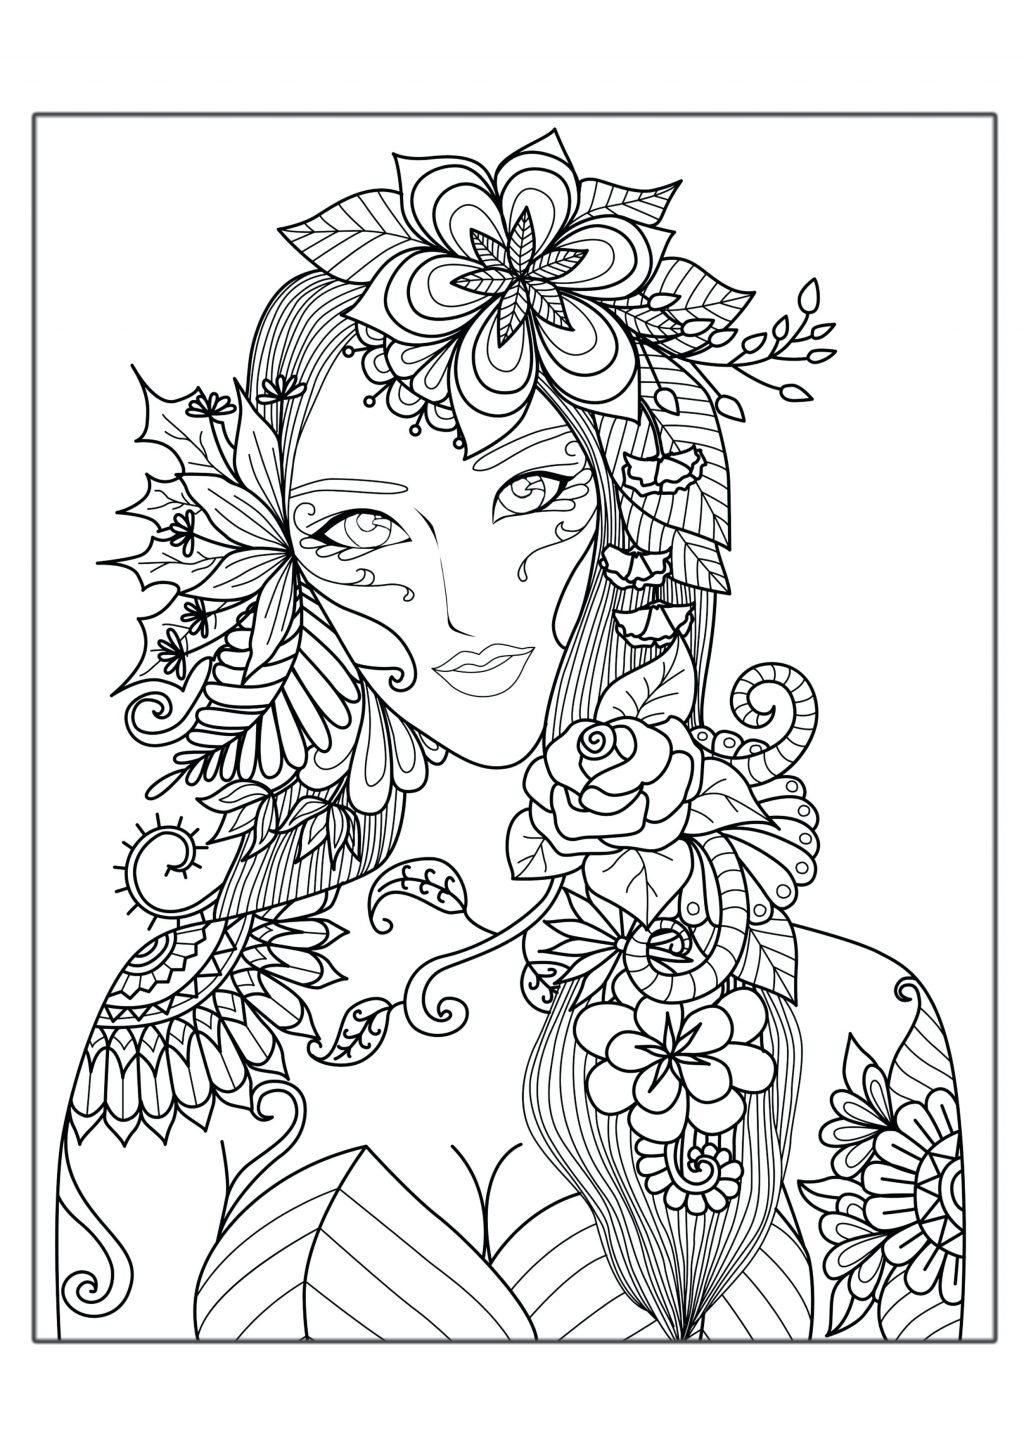 Complex Animal Coloring Pages At Getcolorings